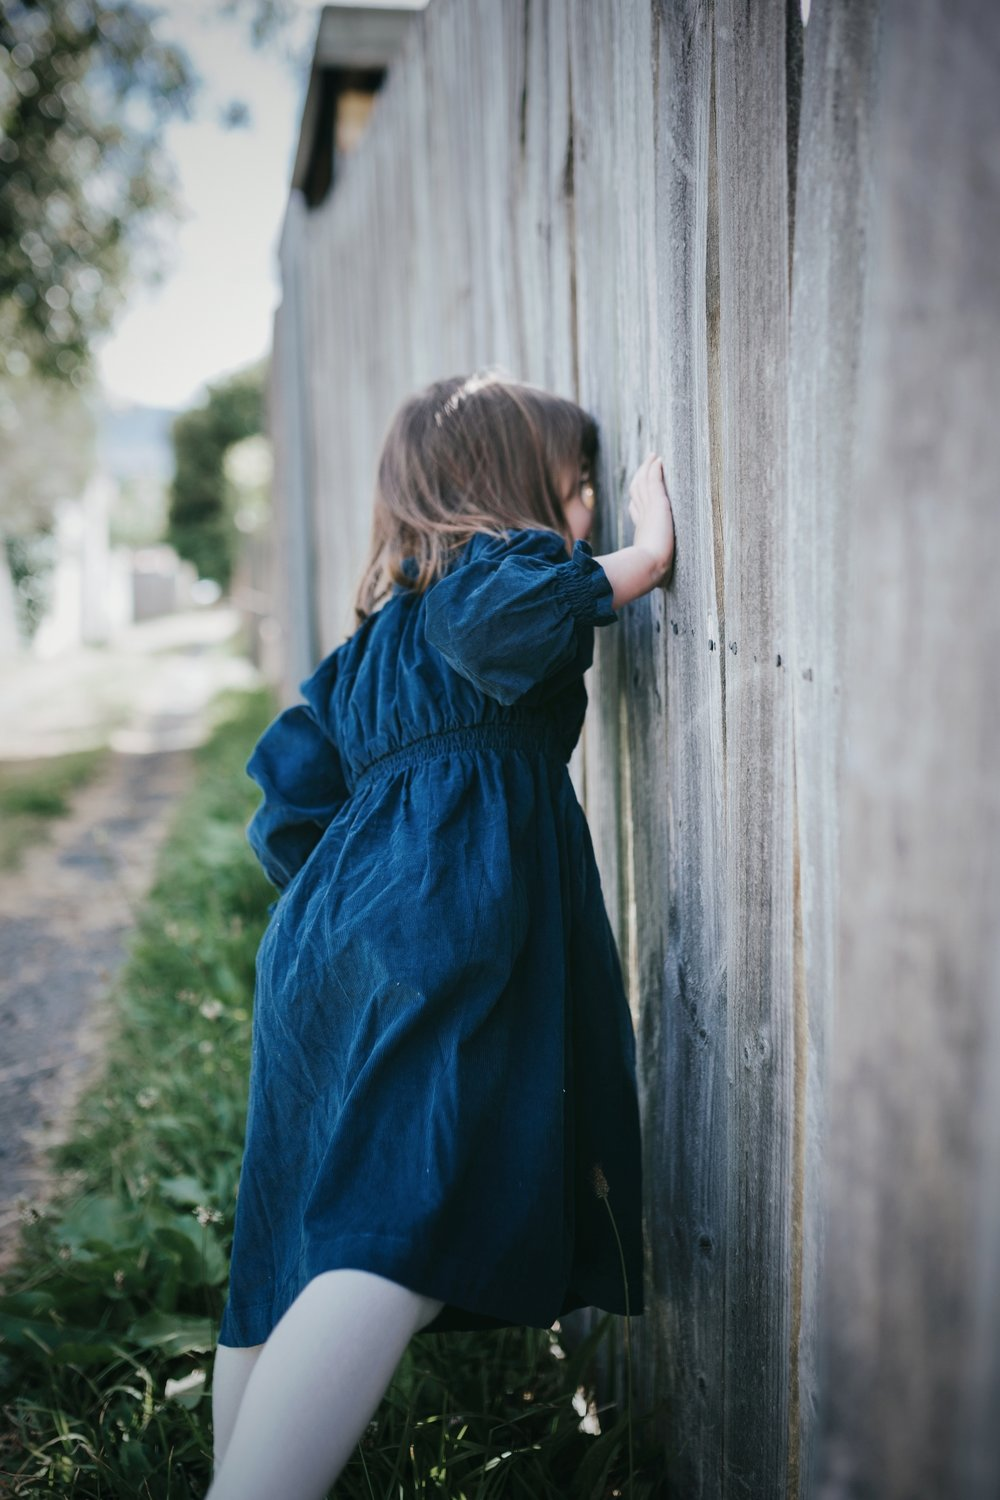 winter-dress-kids-fashion-photography-siida-hobart-peggy.jpg